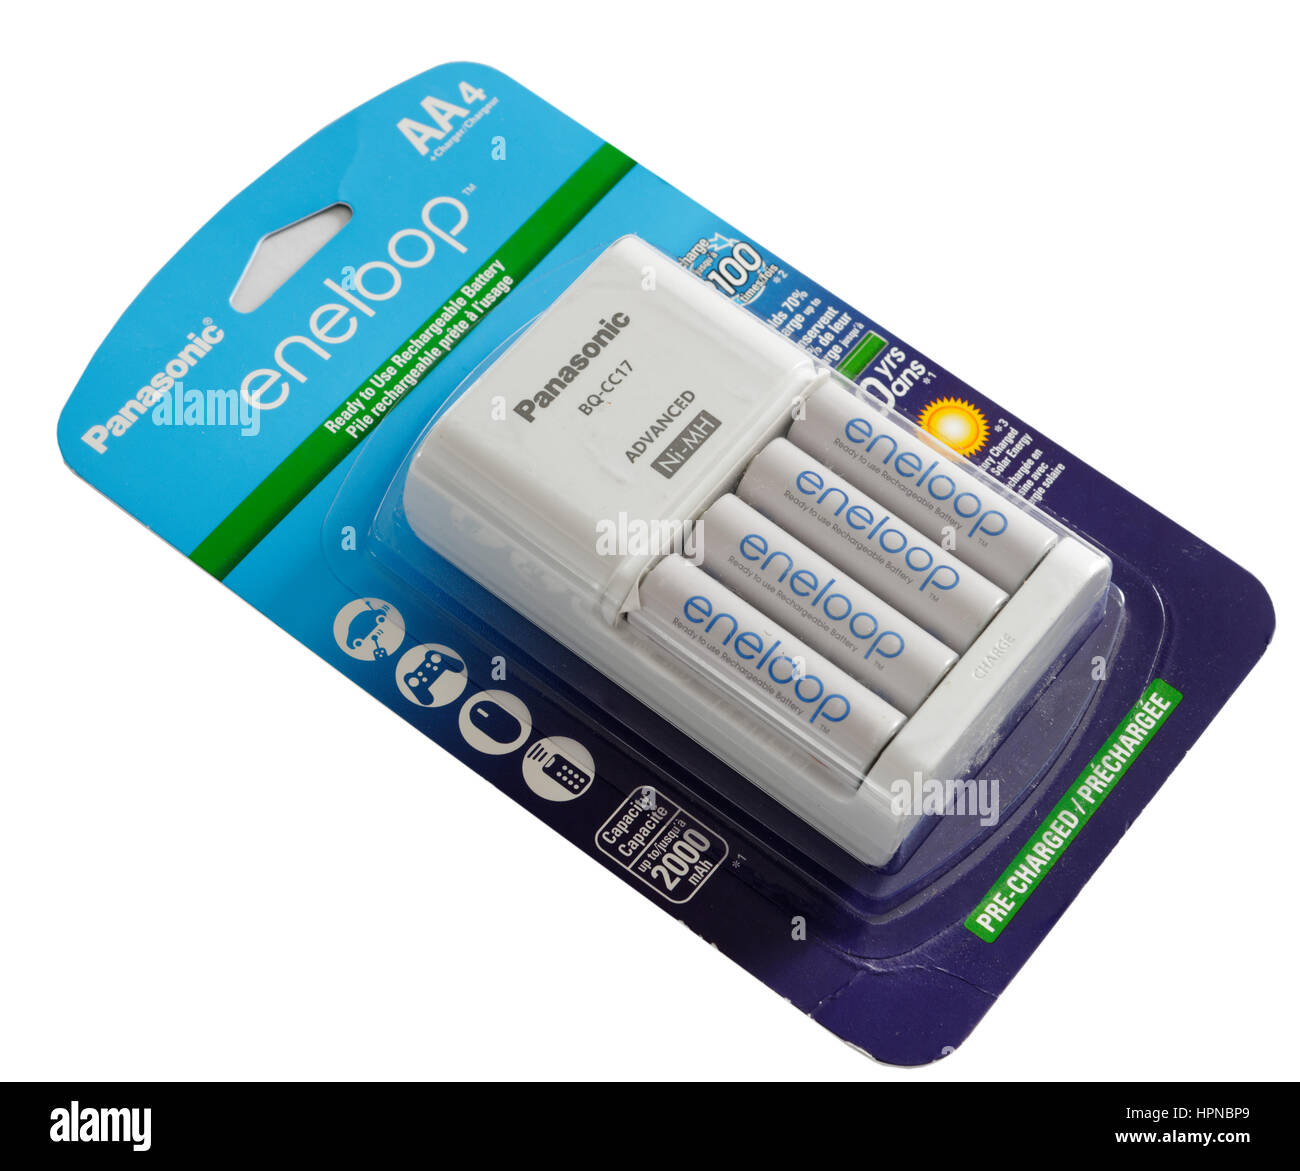 Panasonic Eneloop rechargeable batteries - Stock Image